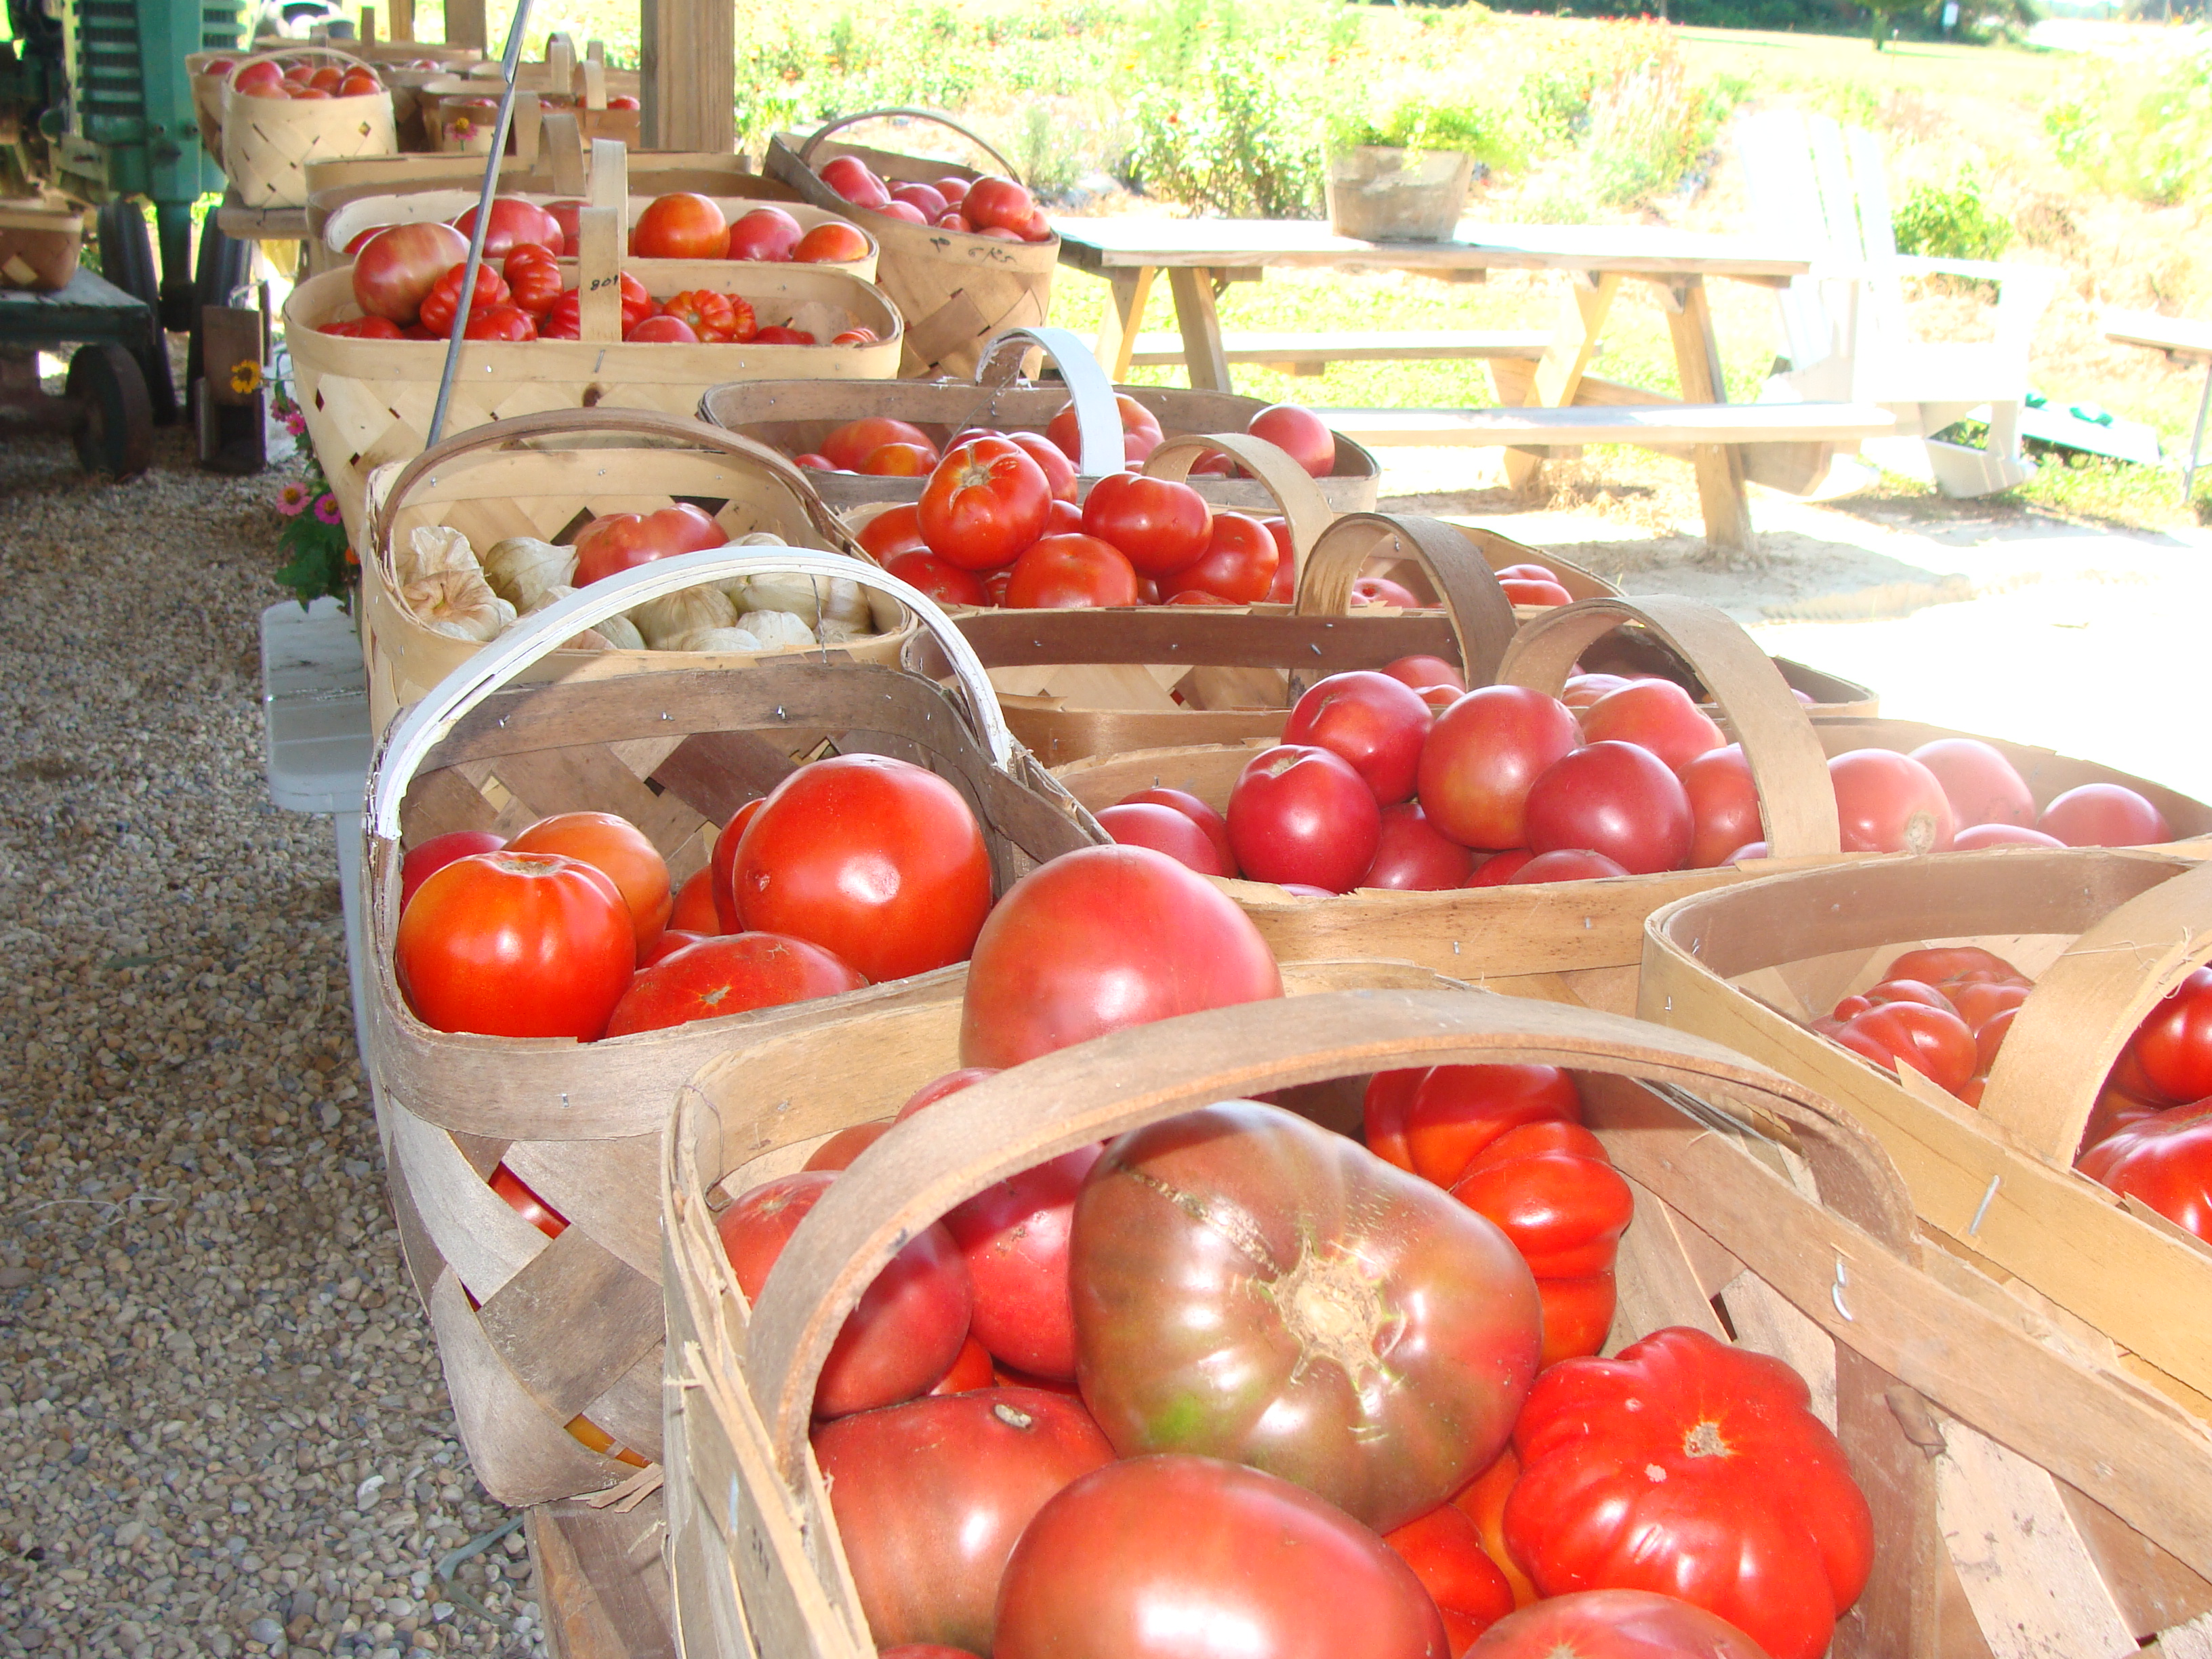 All these baskets are full of heirloom tomatoes